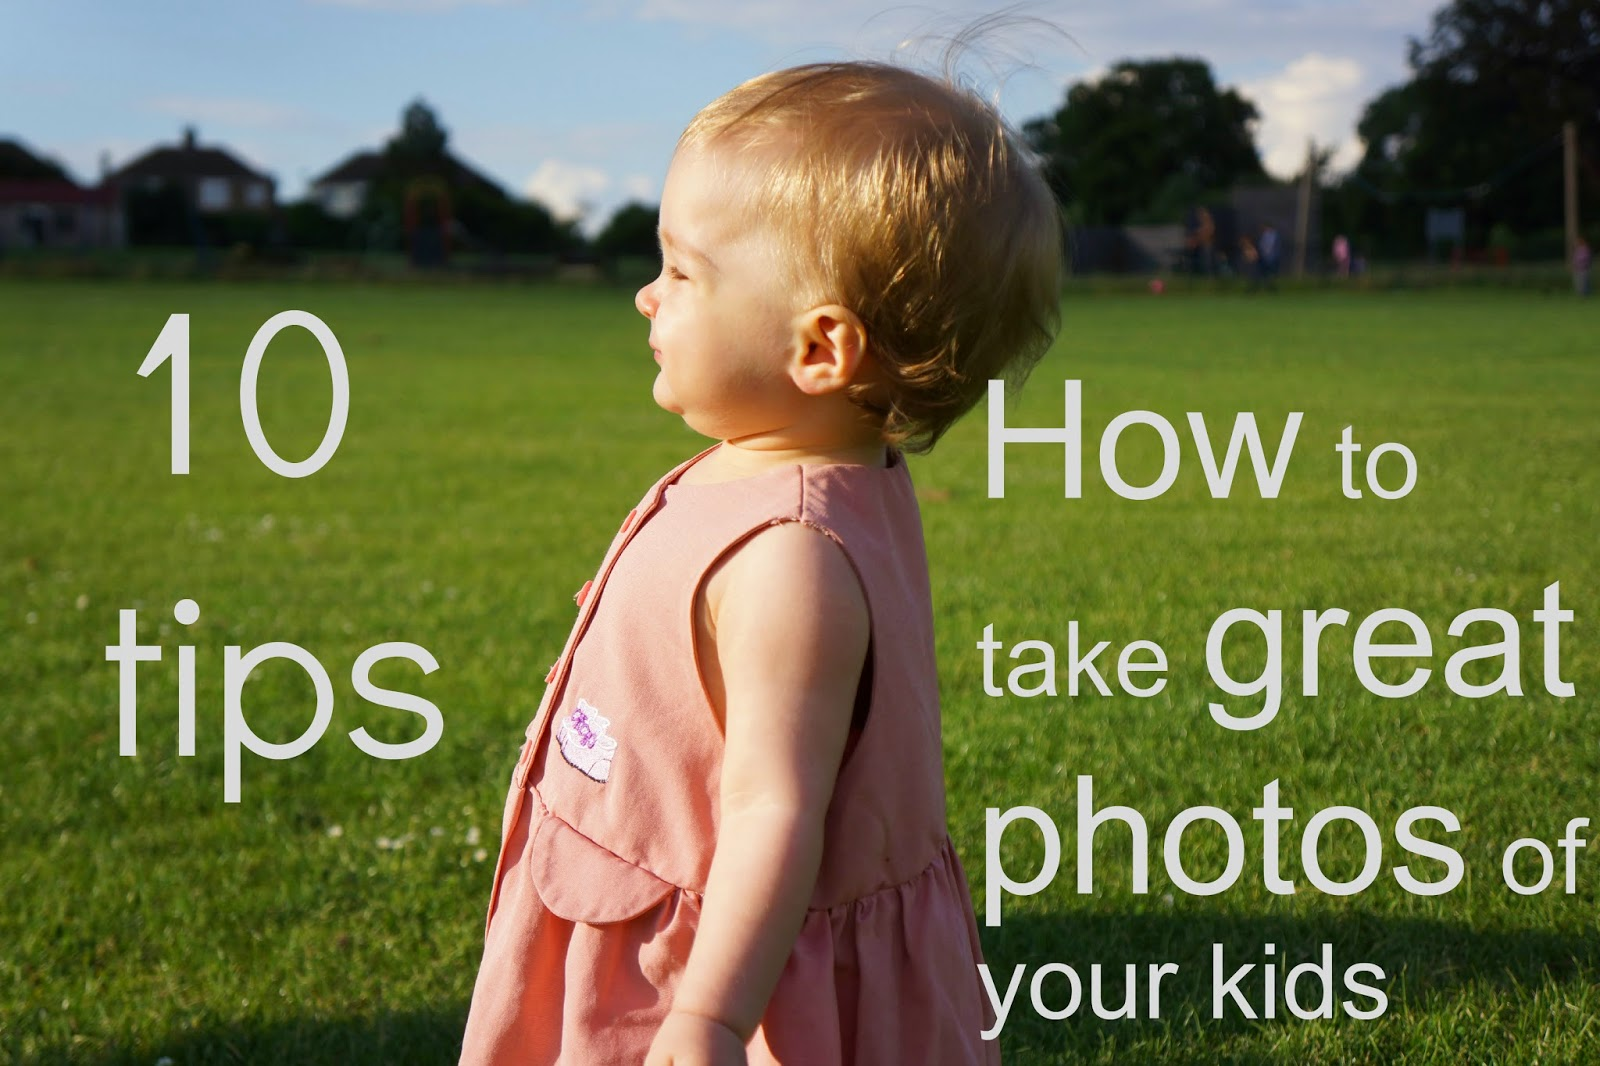 http://www.wavetomummy.com/2014/10/10-tips-how-to-take-great-photos-of.html